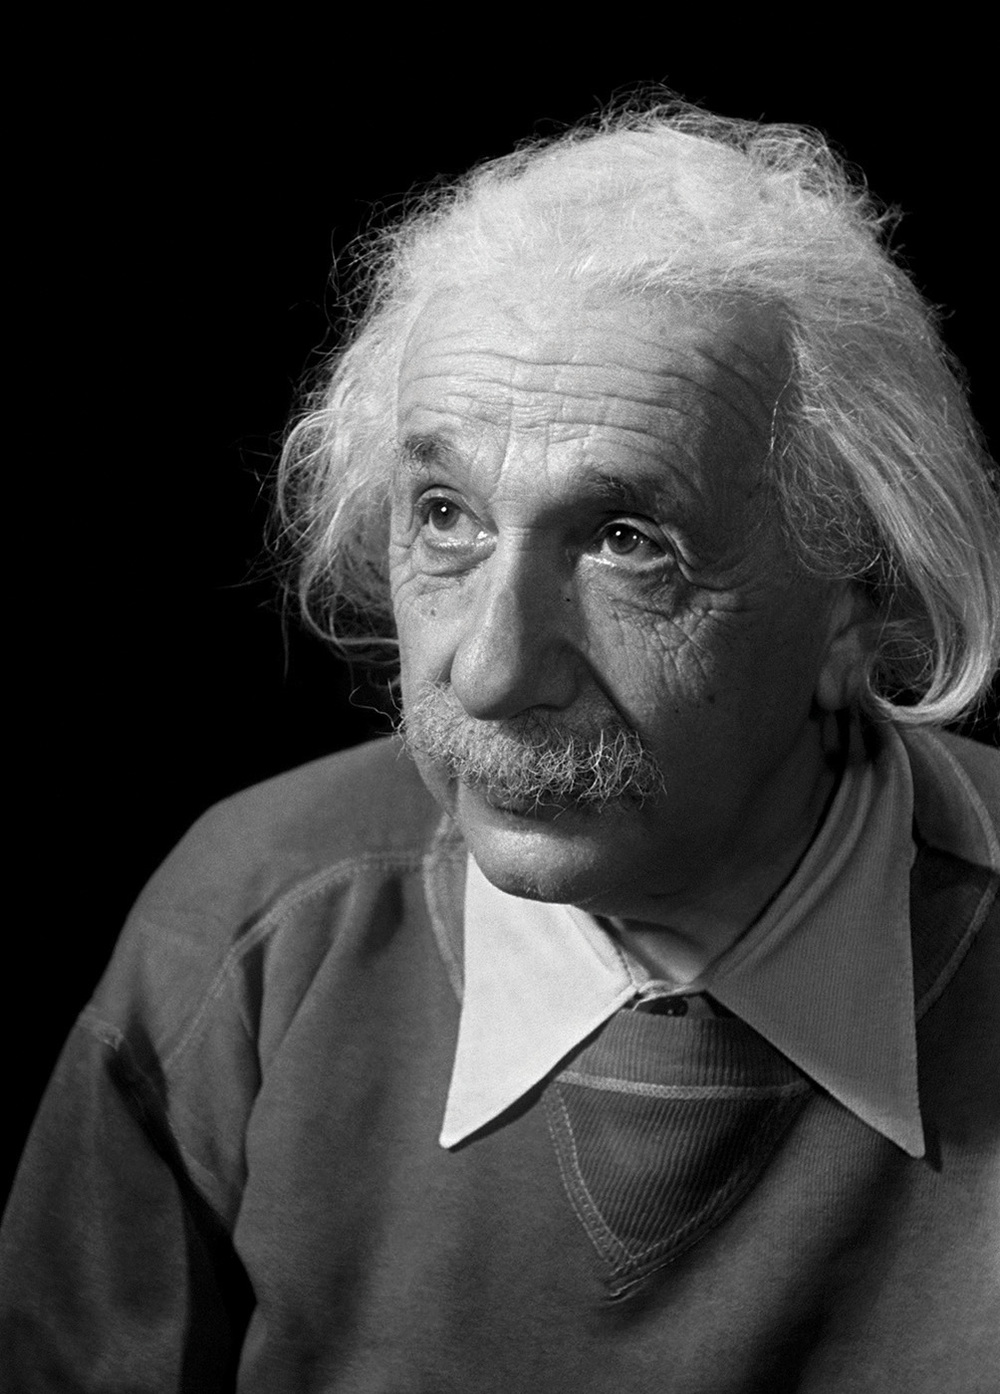 Albert Einstein, Princeton, New Jersey, 1950